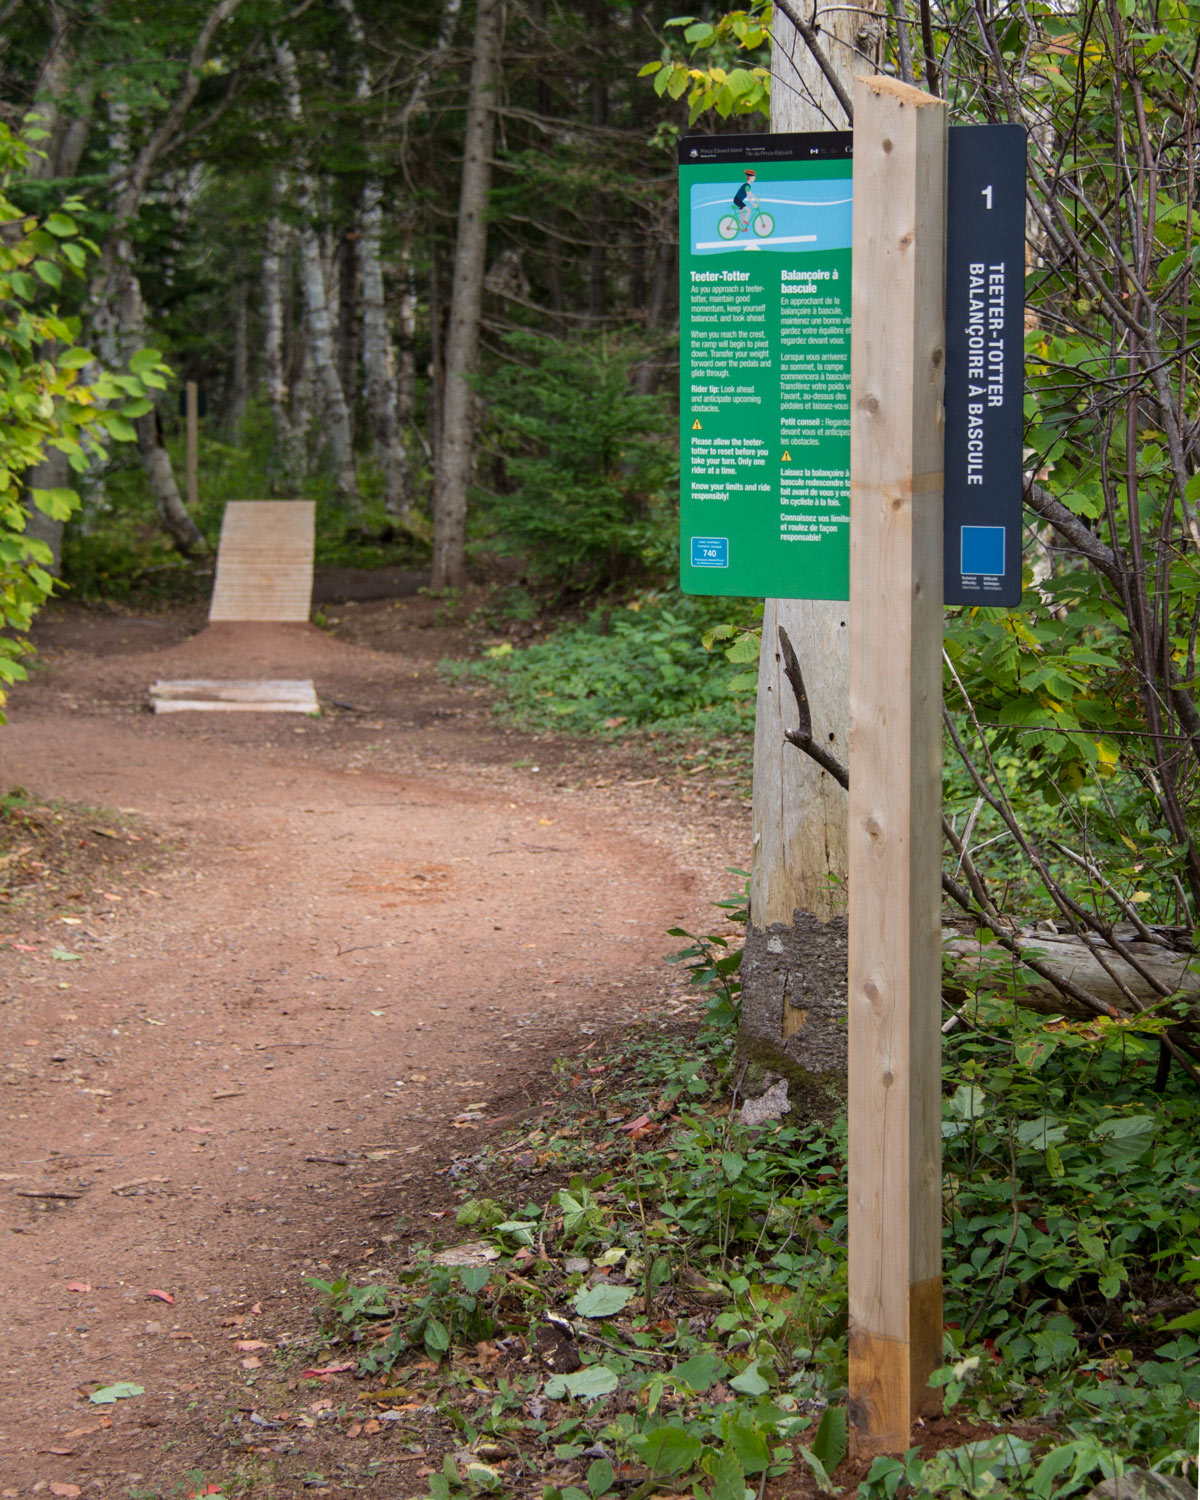 MOUNTAIN BIKE FEATURES The 12 technical trail features are clearly marked with instructions at each entrance. These features are designed to challenge beginner to intermediate mountain bikers.